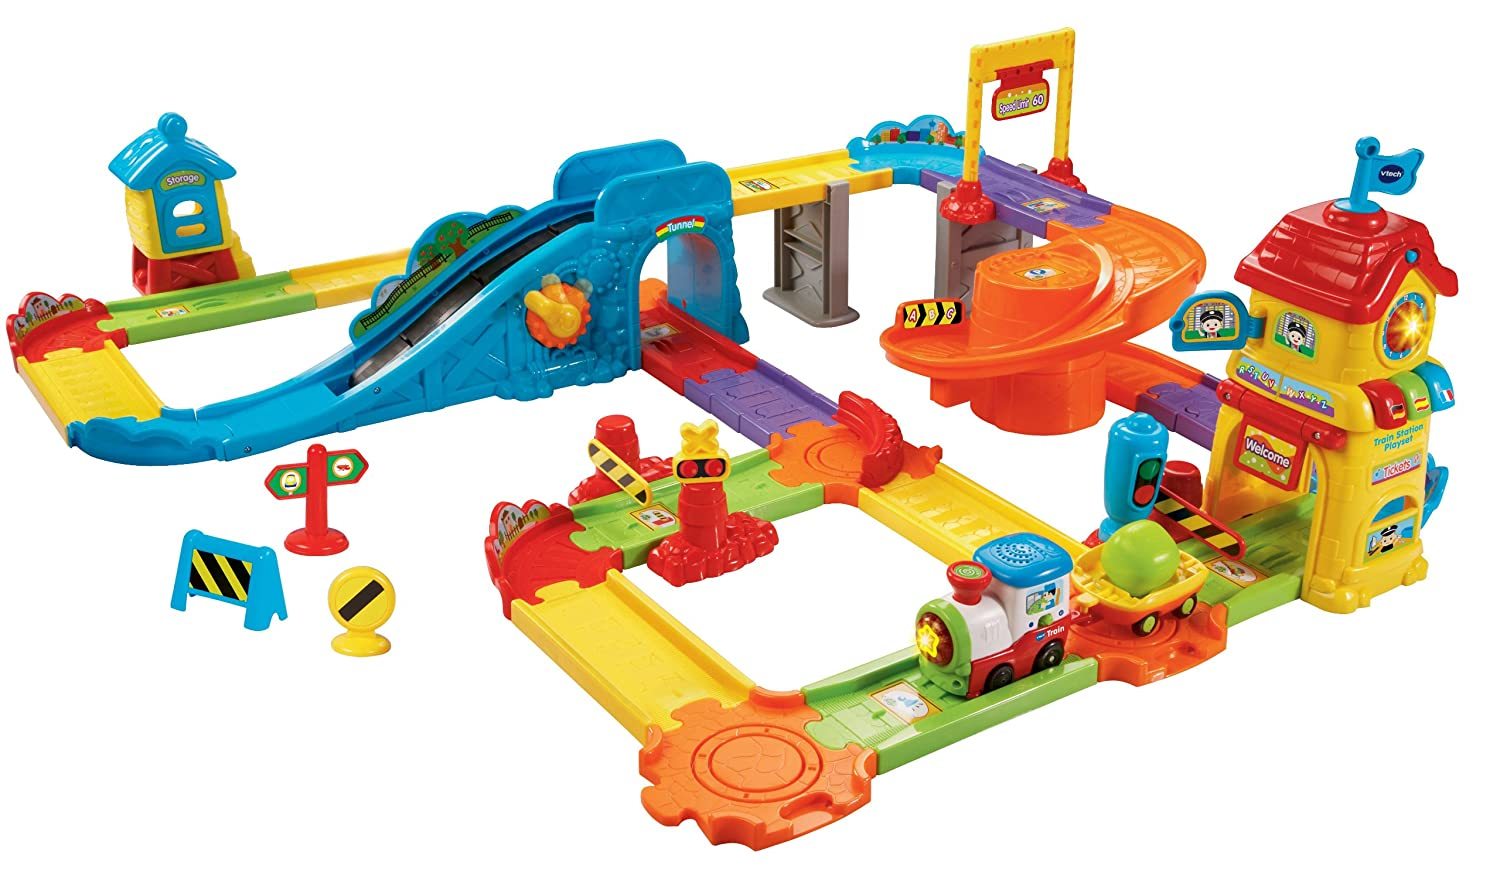 Top 9 Best Train Sets for Toddlers Reviews in 2021 17